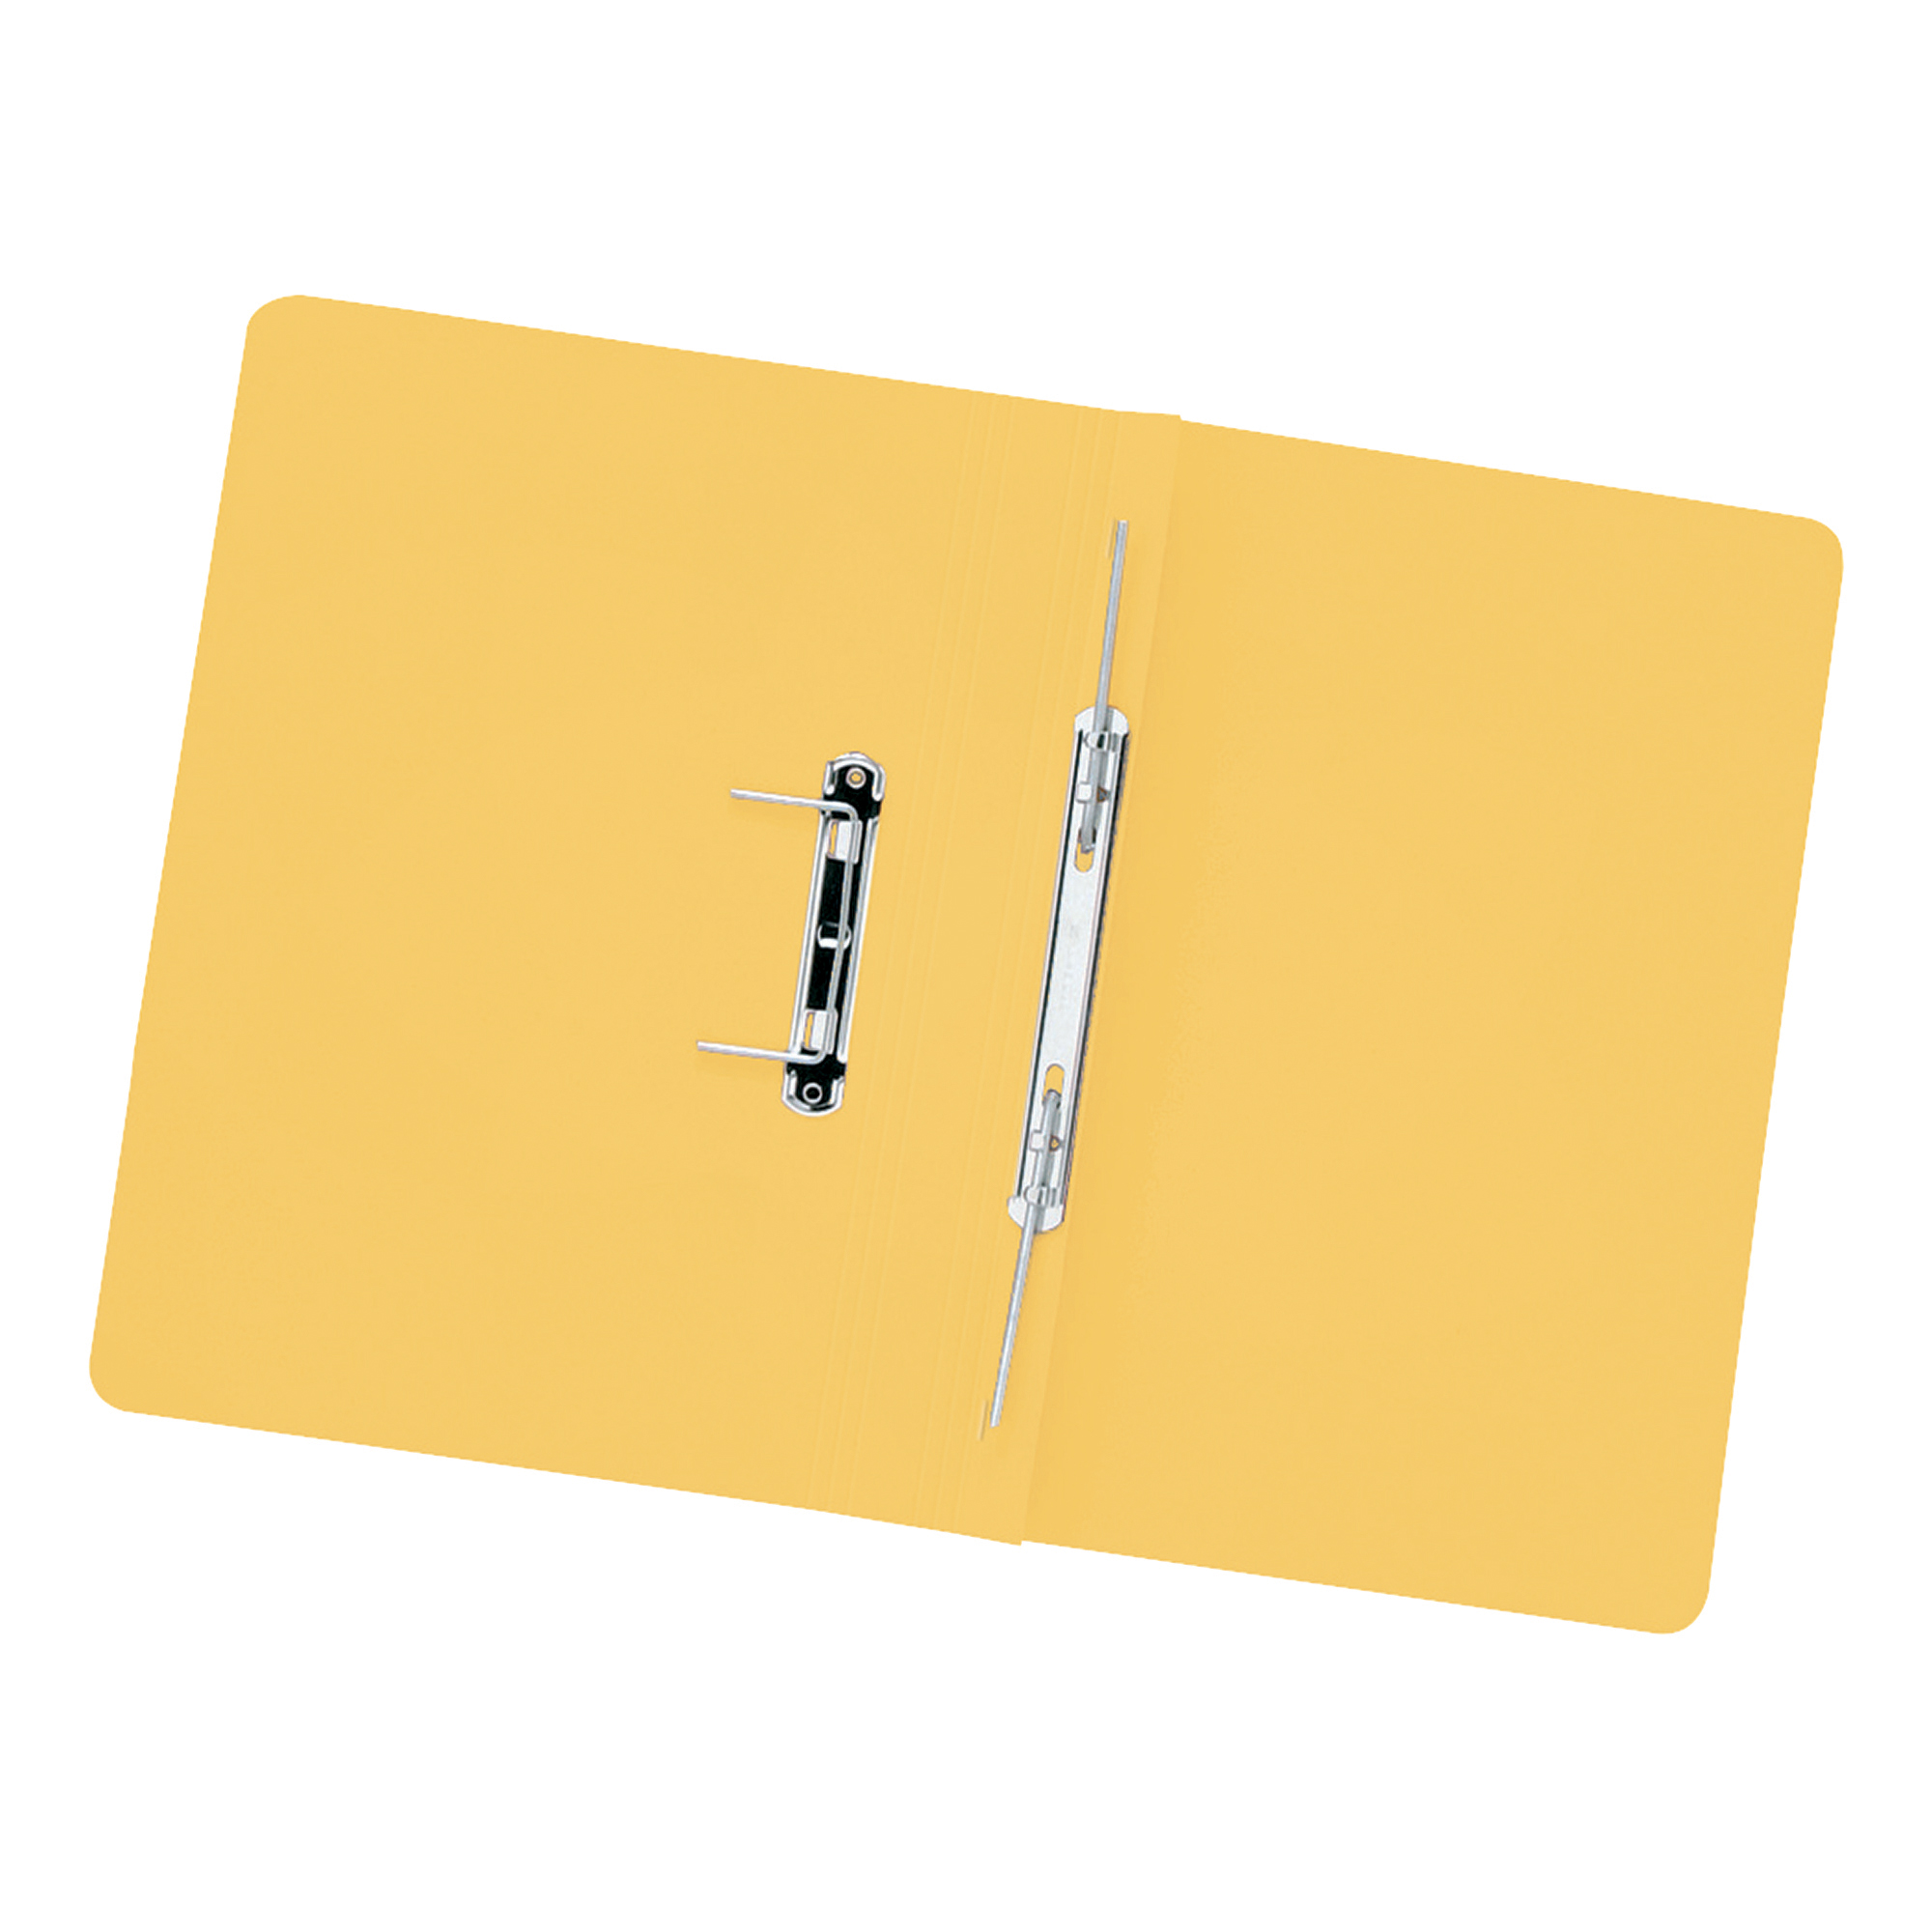 5 Star Elite Transfer Spring File Heavyweight 315gsm Capacity 38mm Foolscap Yellow [Pack 50]